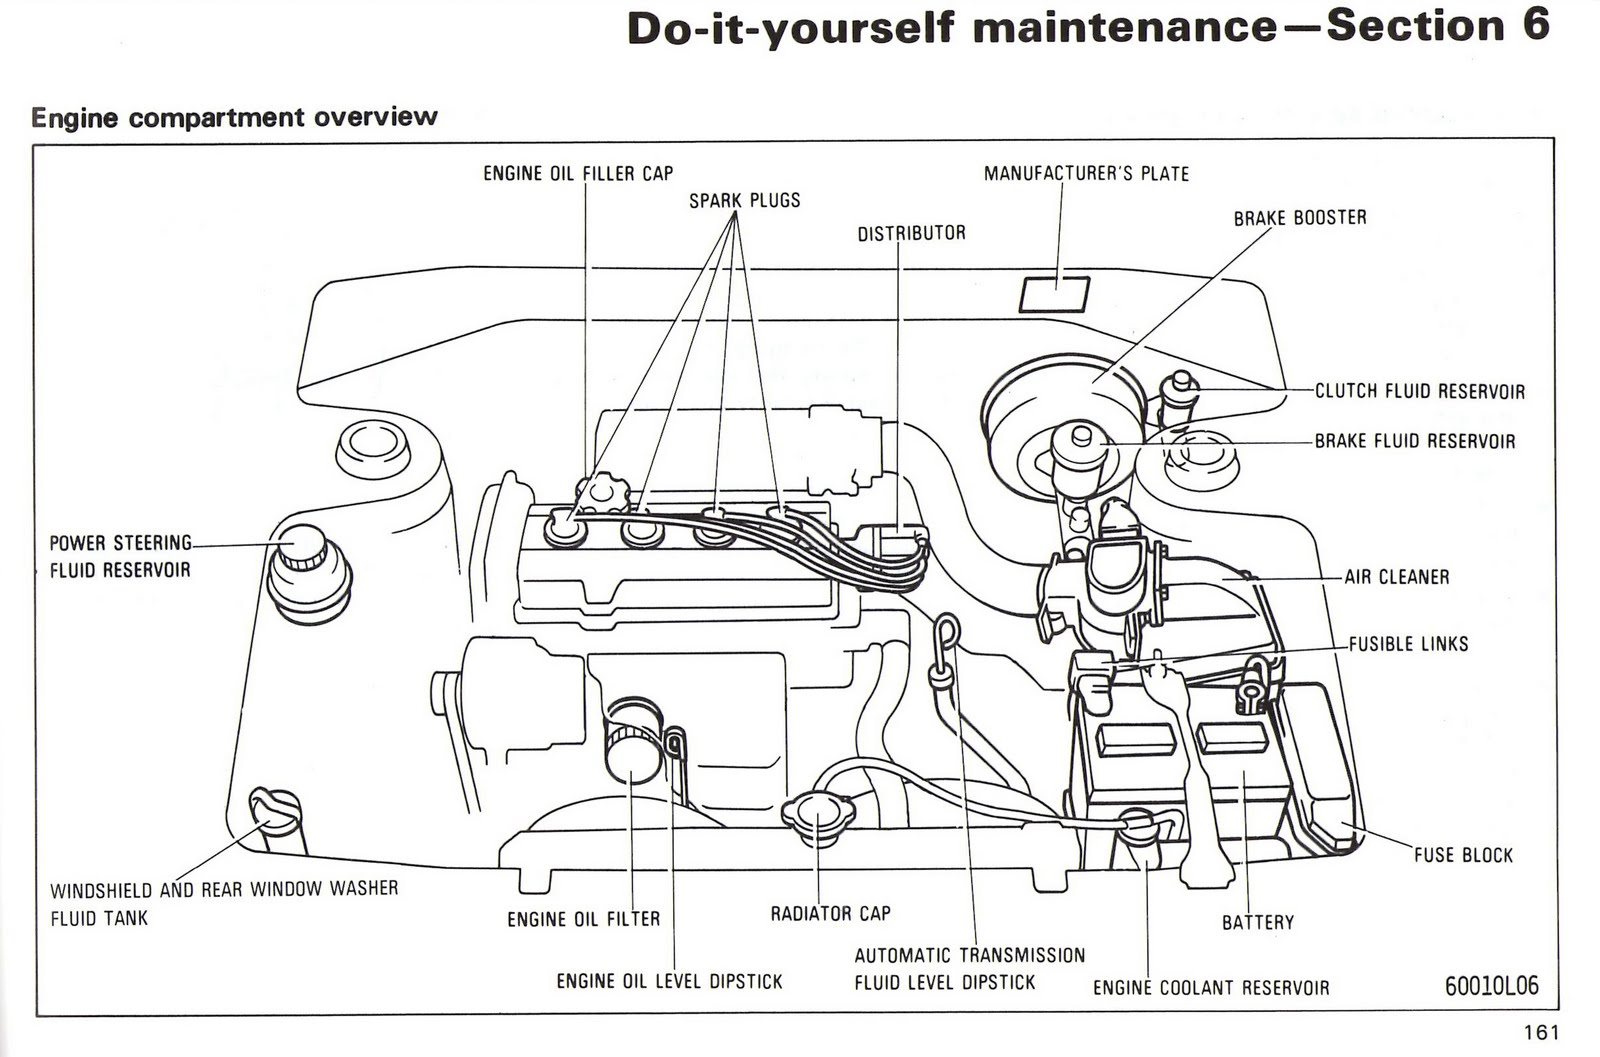 Toyota Prius User Manual